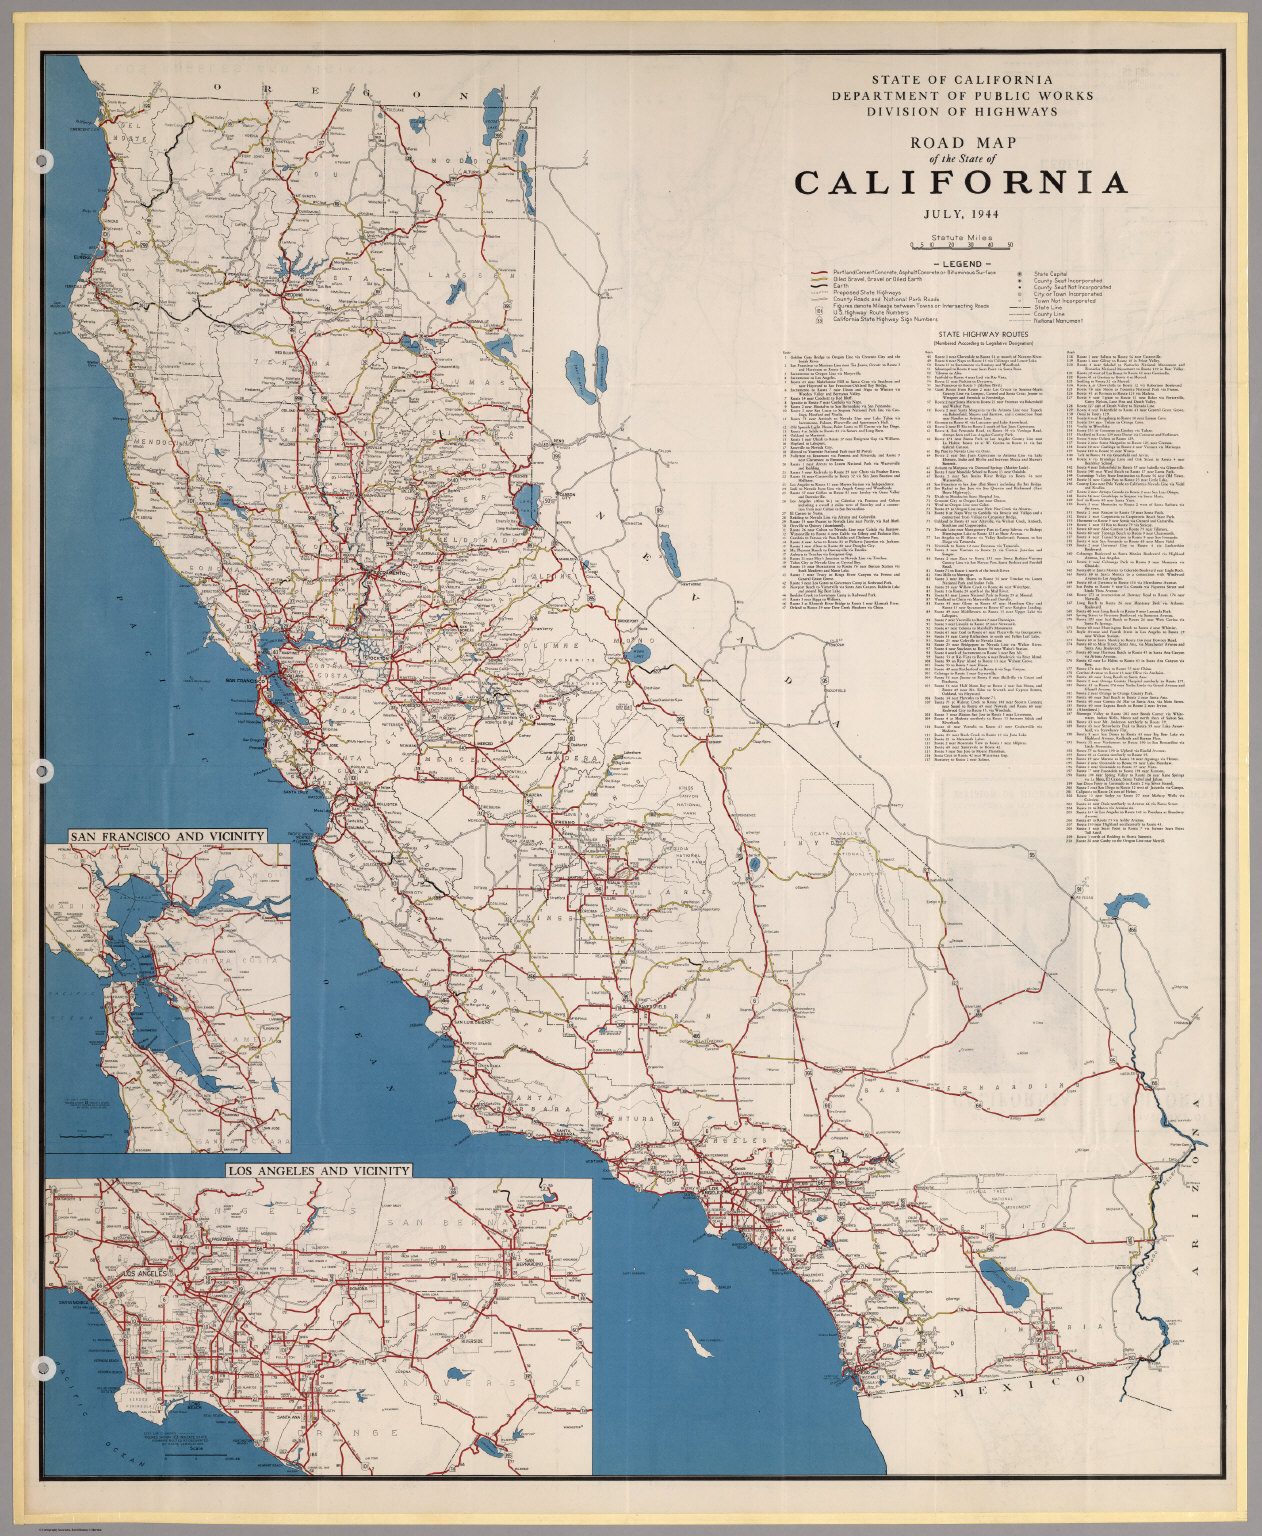 Road Map of the State of California, July, 1944.